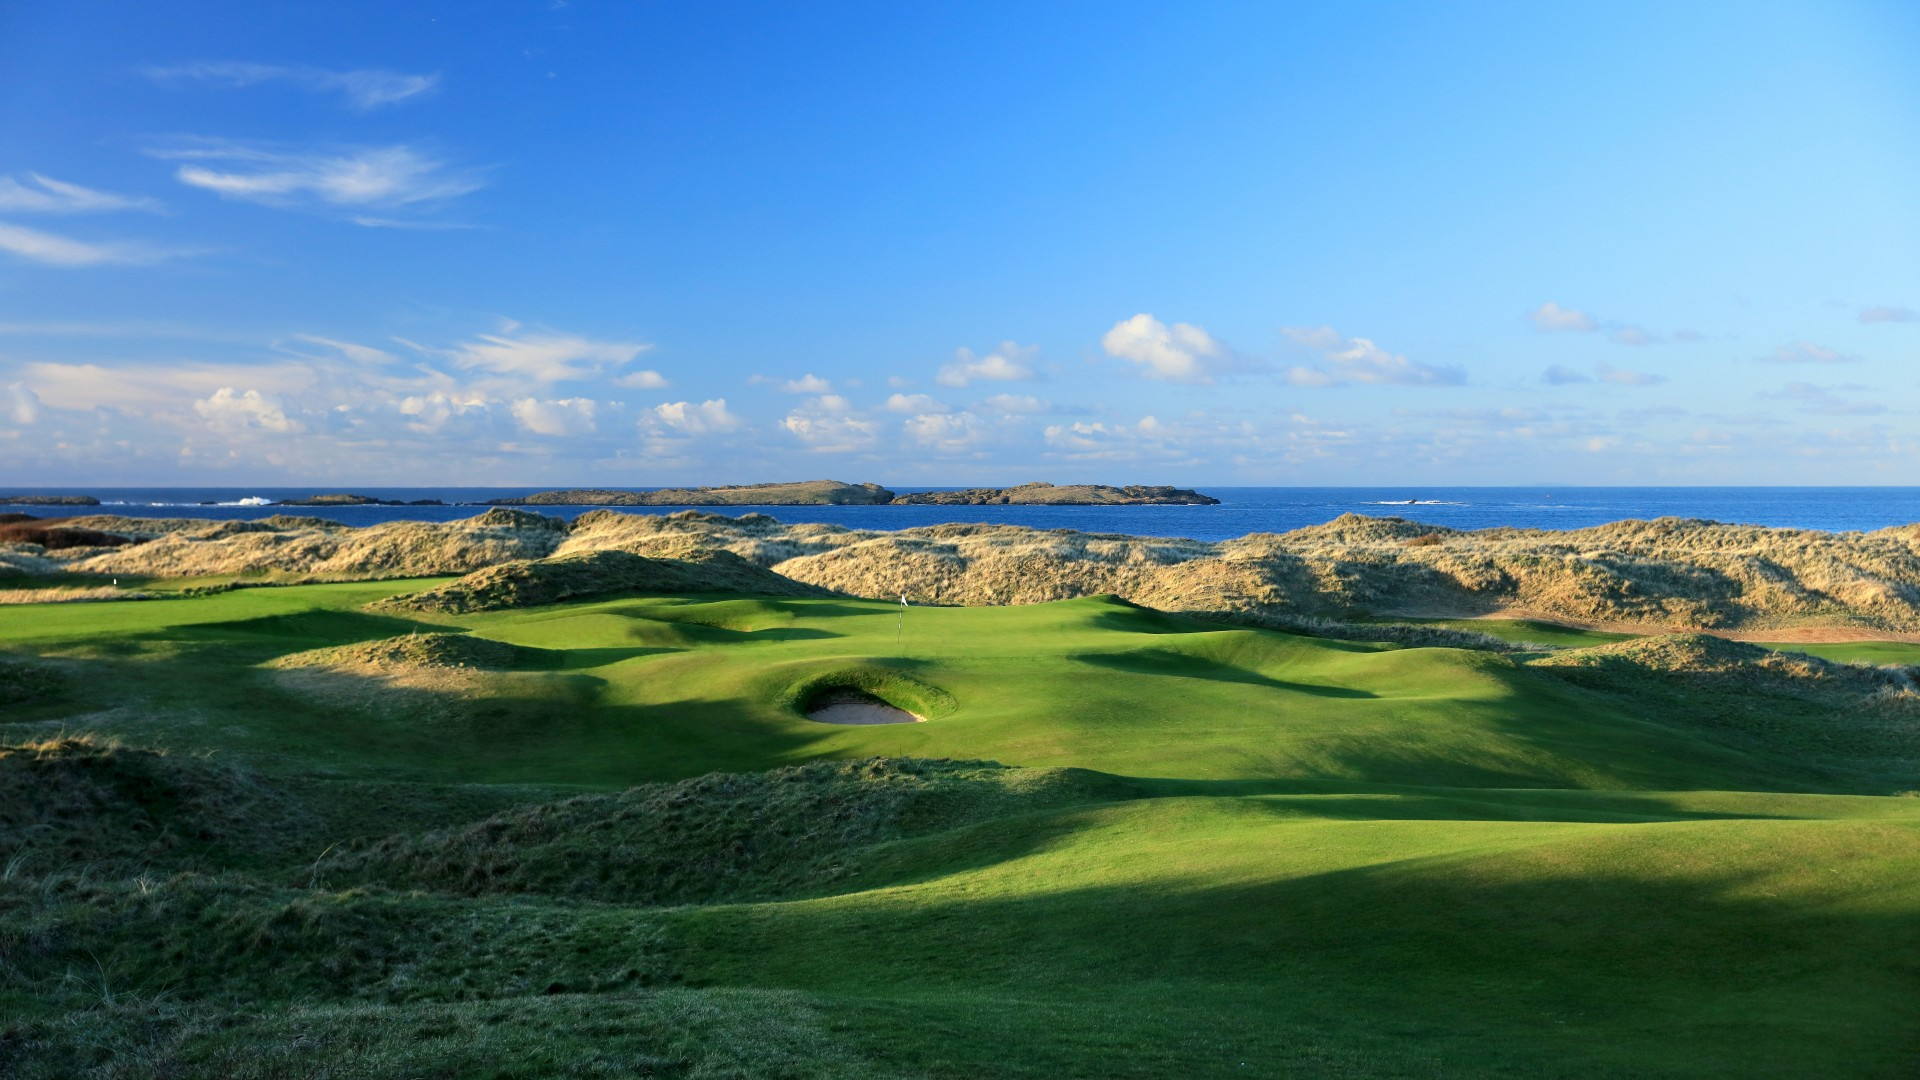 Royal Portrush Golf Club, 15th hole Skerries, The Open 2019